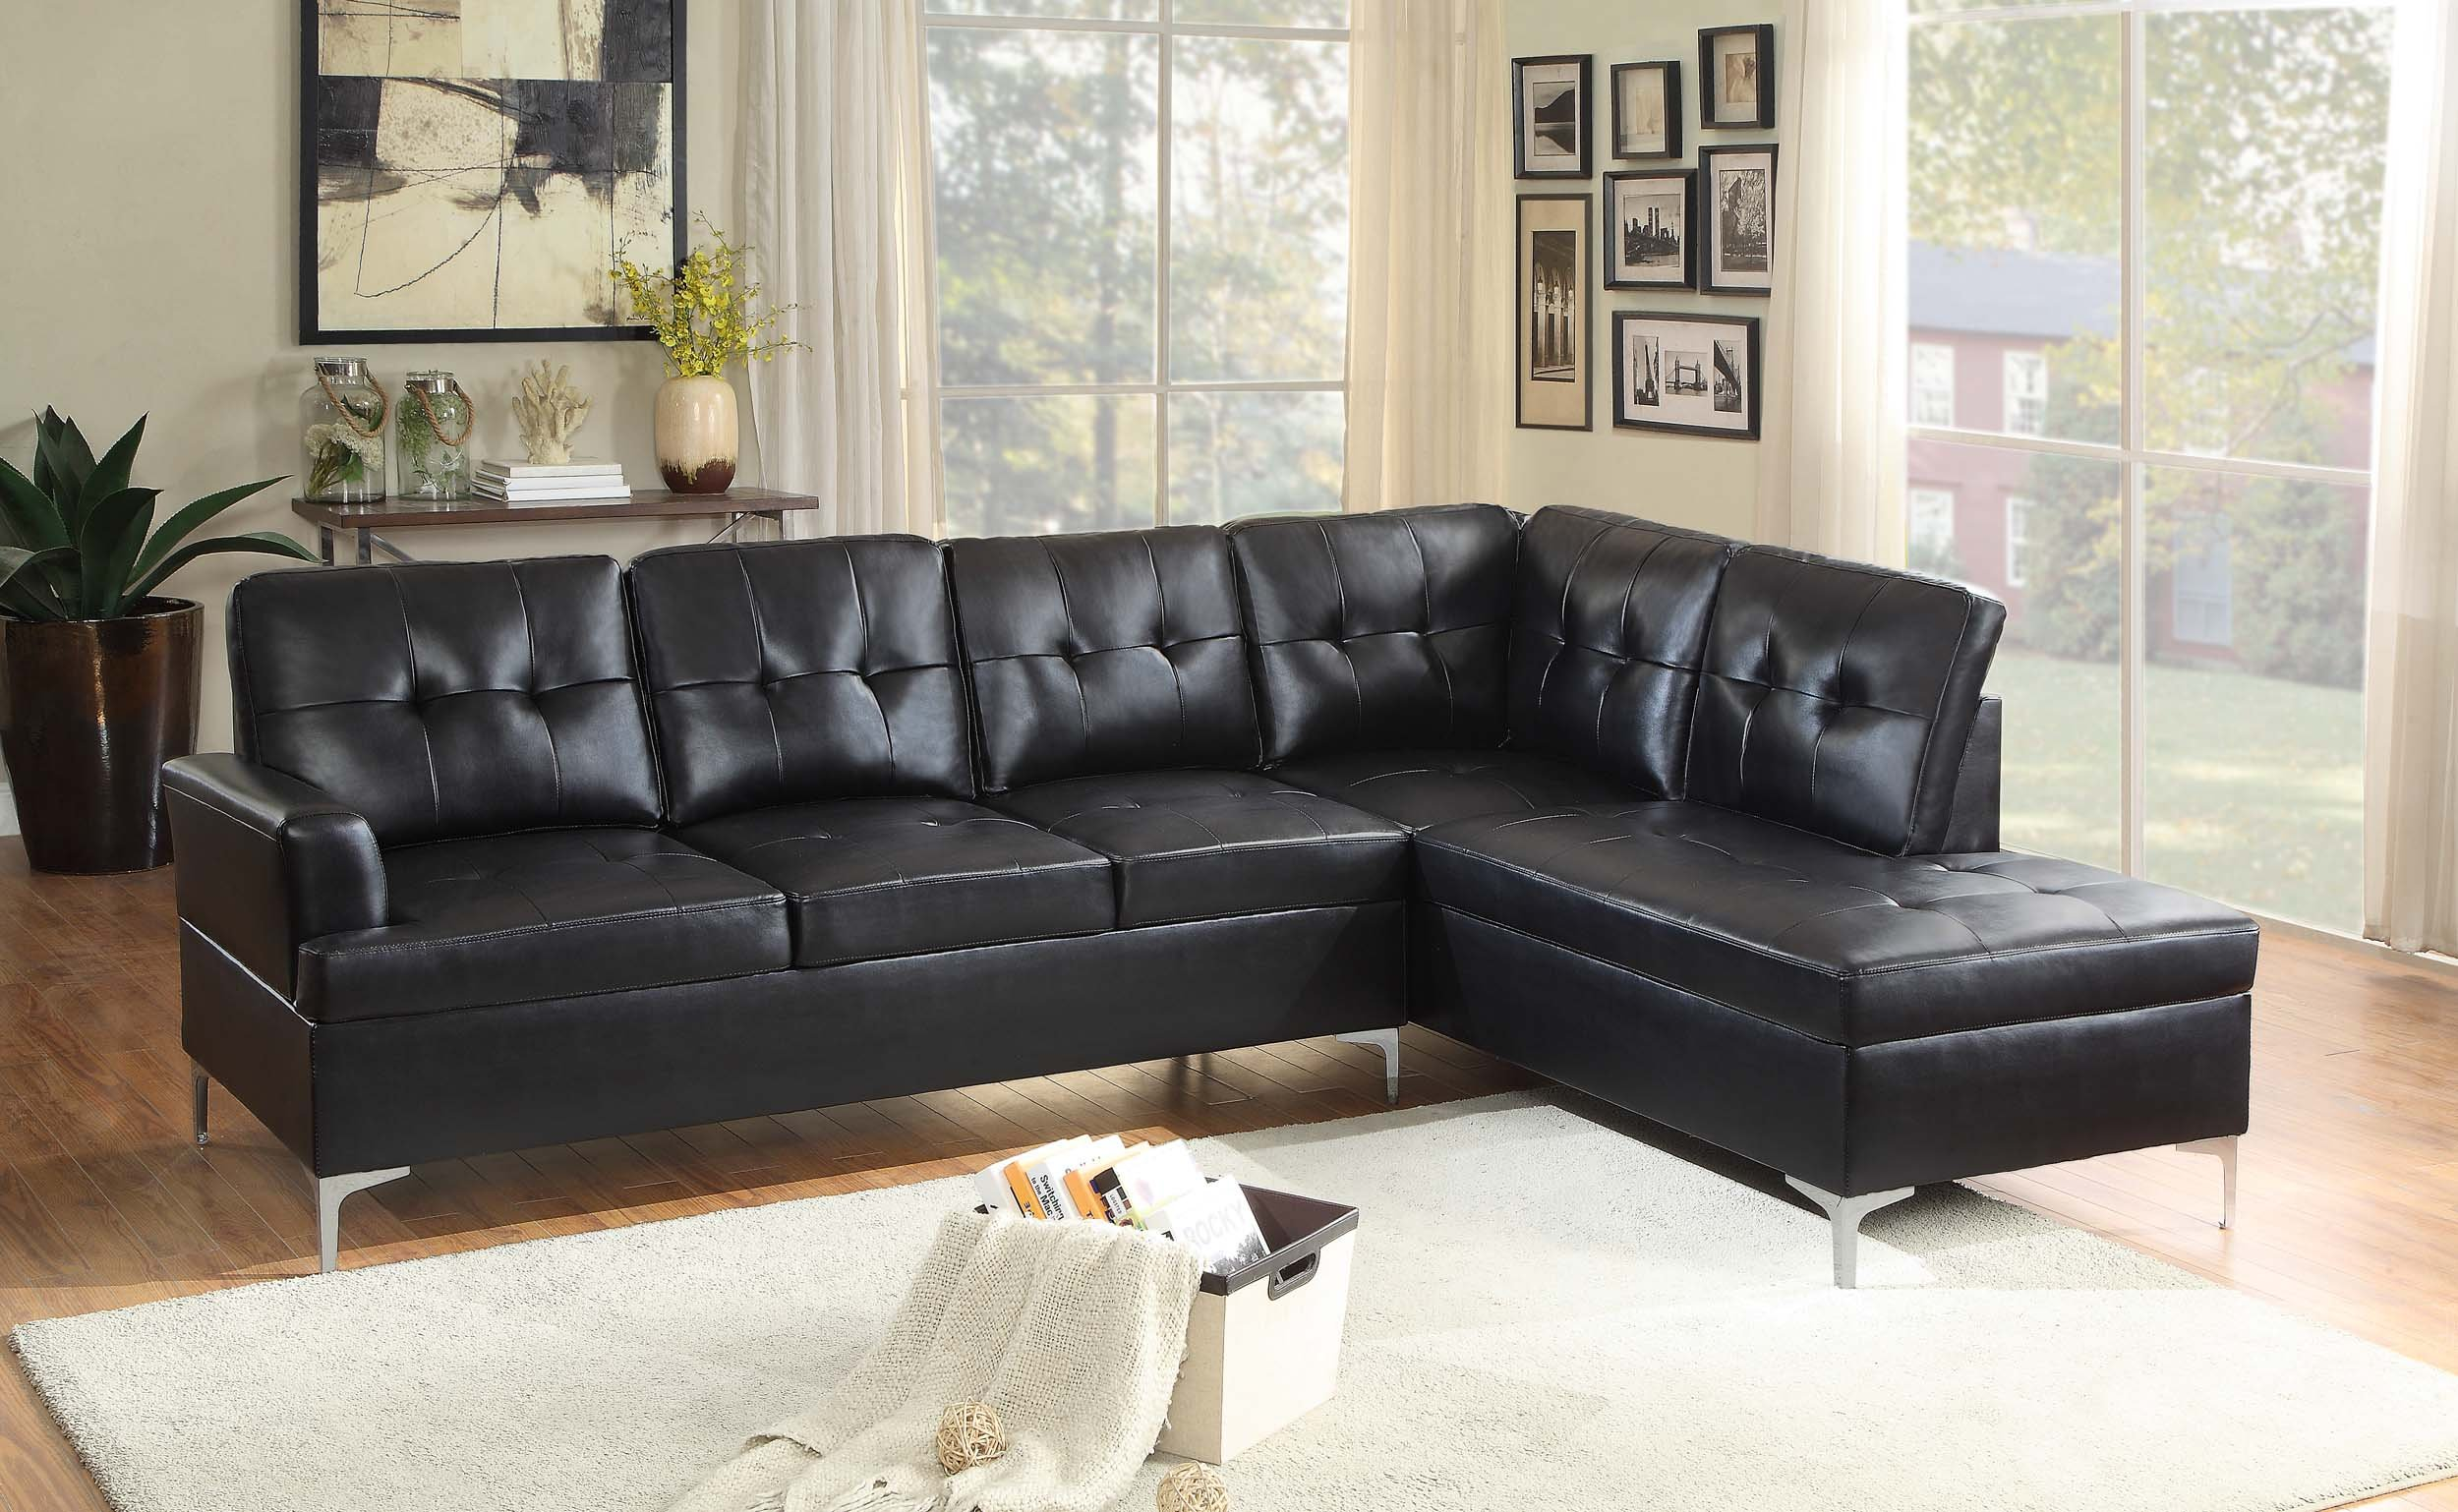 Homelegance 2 Piece Tufted Accent Sectional Sofa With Chaise Bi